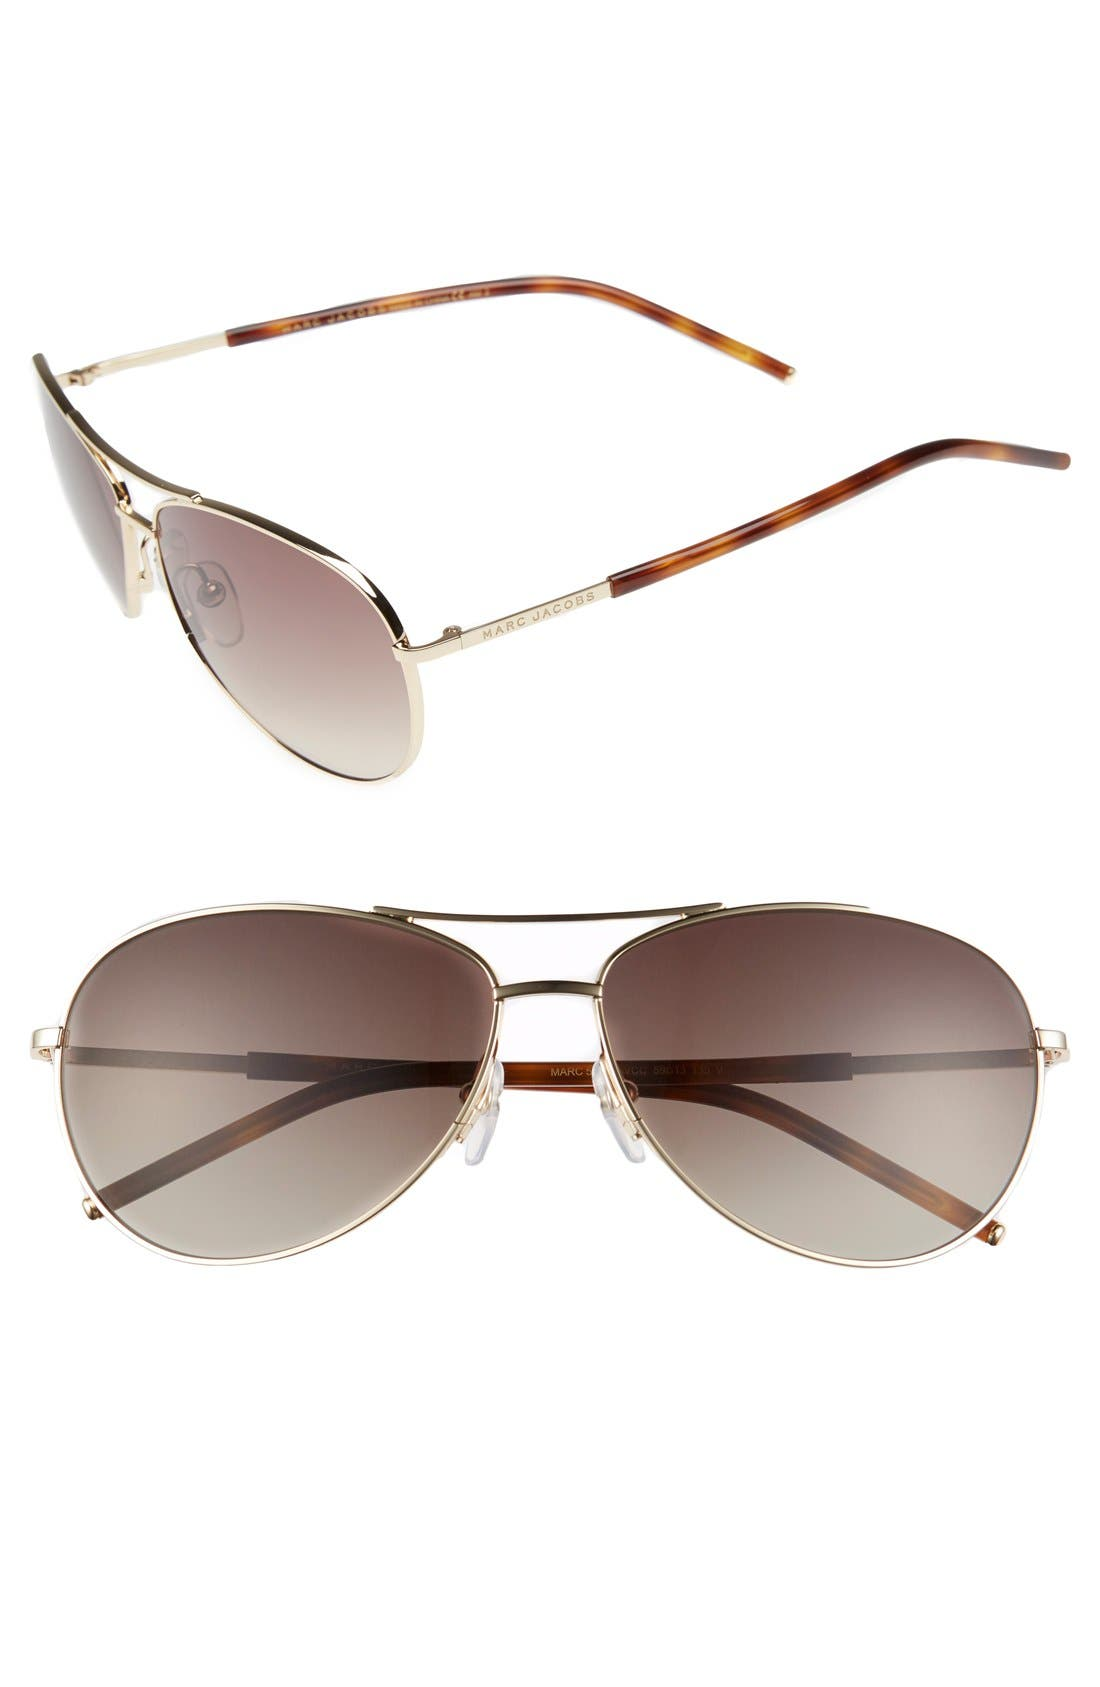 Alternate Image 1 Selected - MARC JACOBS 59mm Aviator Sunglasses